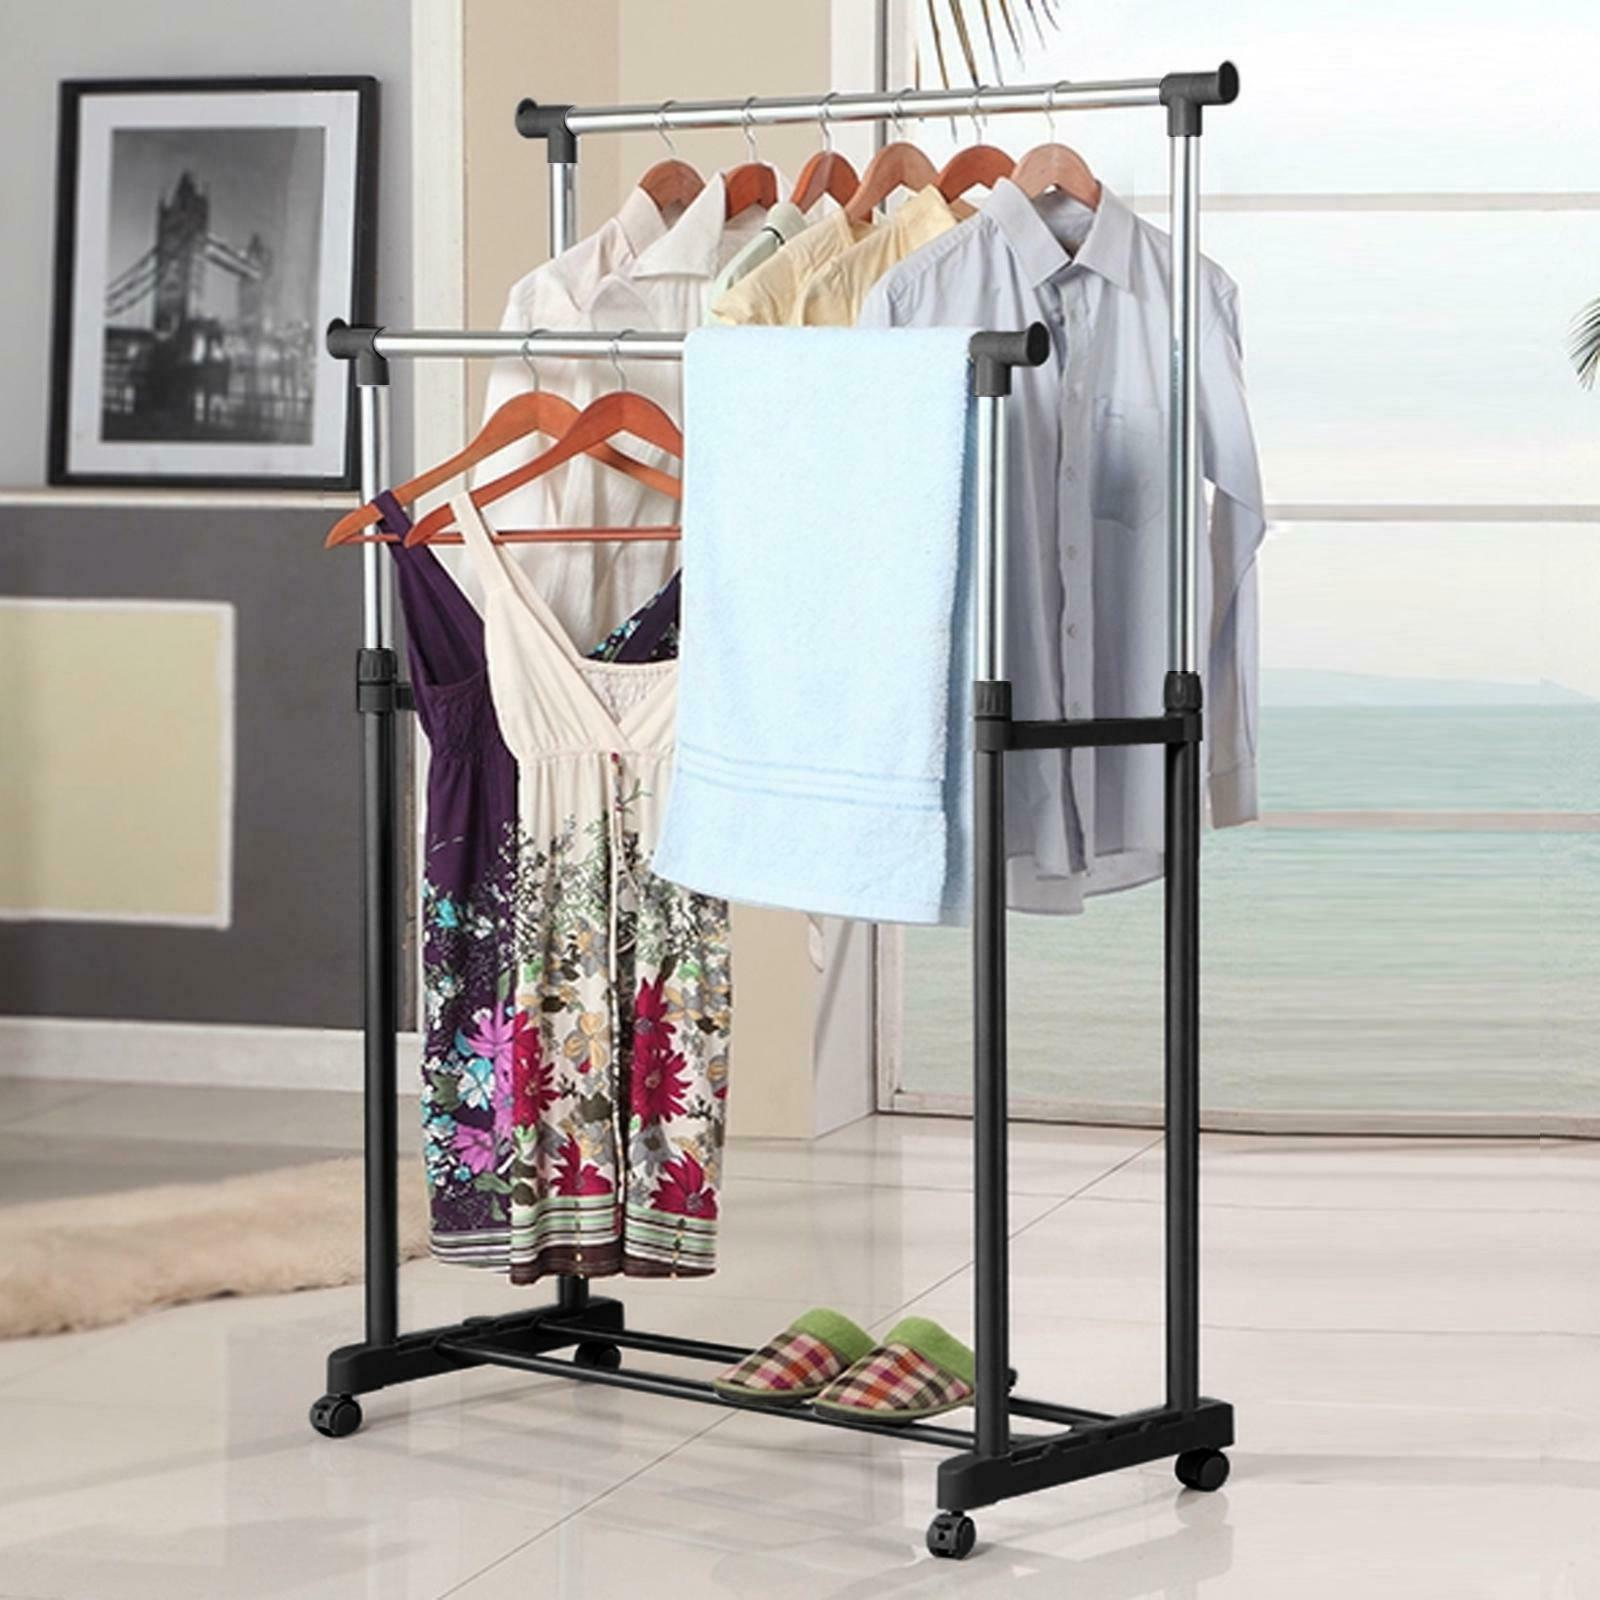 Portable Laundry Clothes Drying Adjustable Dryer